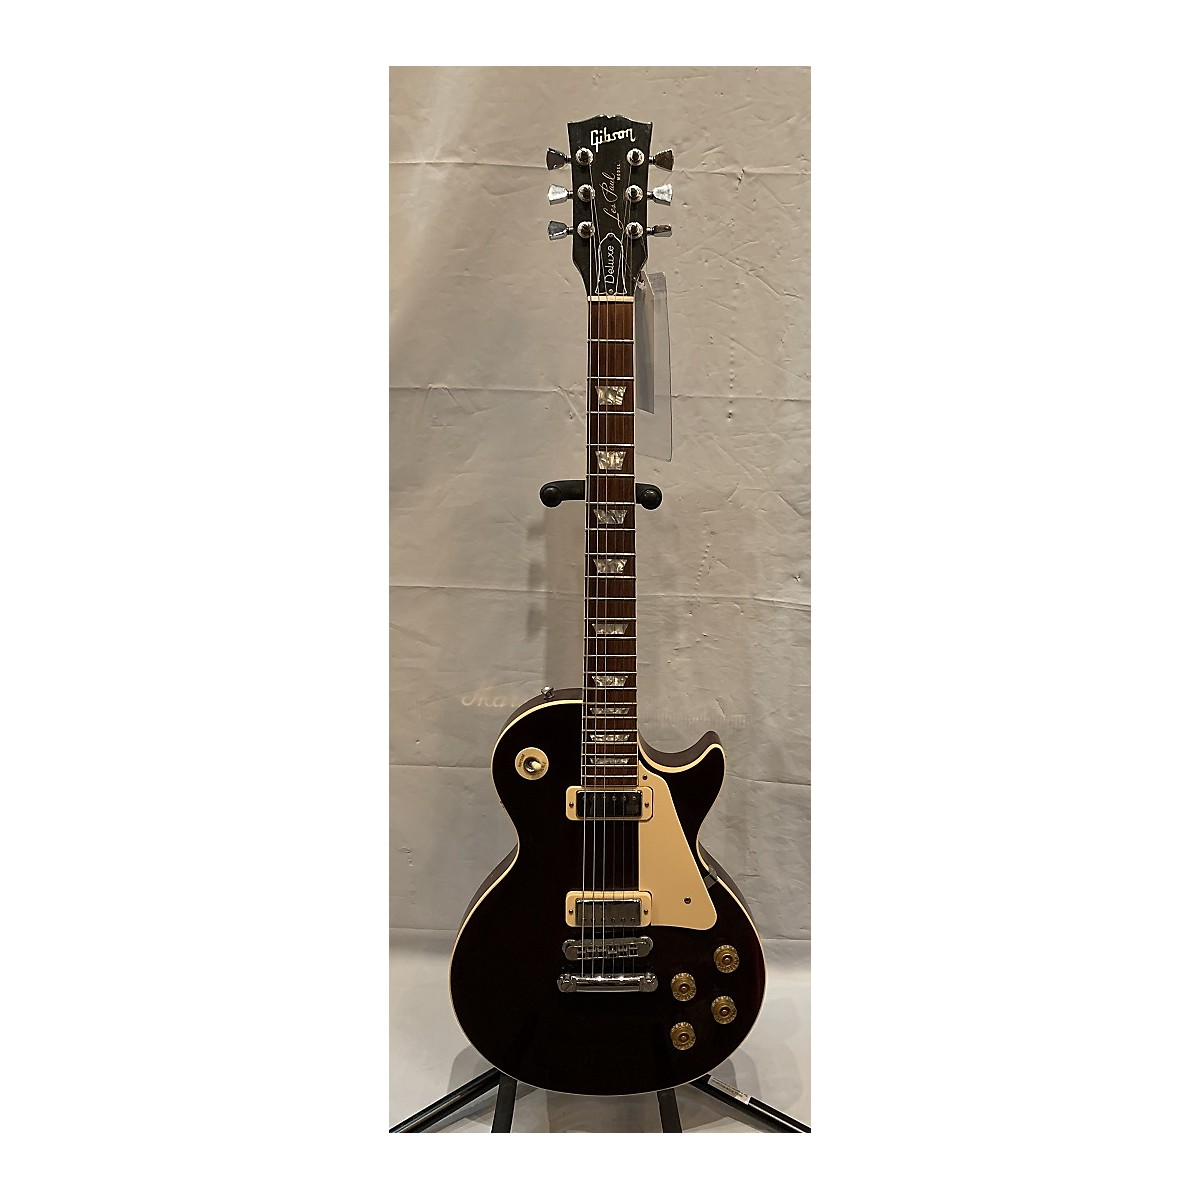 Gibson 1982 Les Paul Deluxe Solid Body Electric Guitar